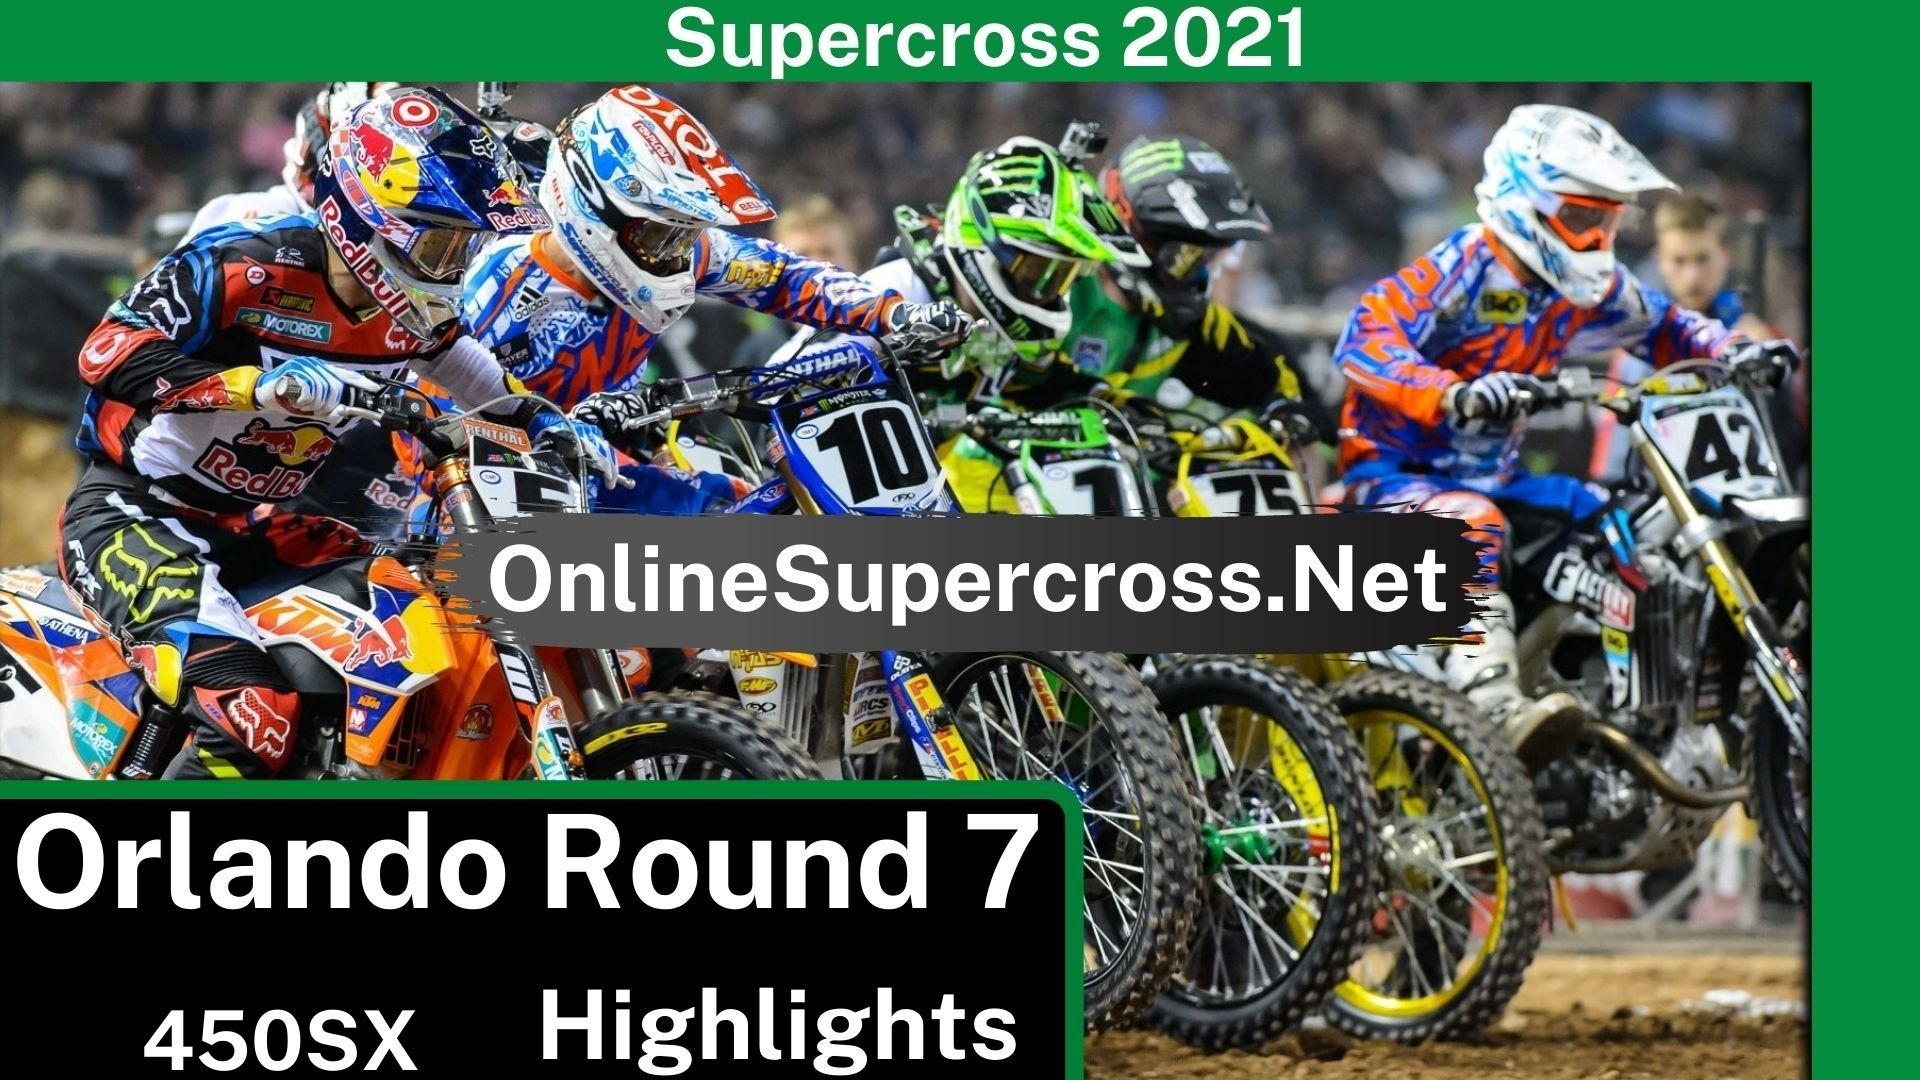 Orlando Round 7 Supercross 450SX Highlights 2021